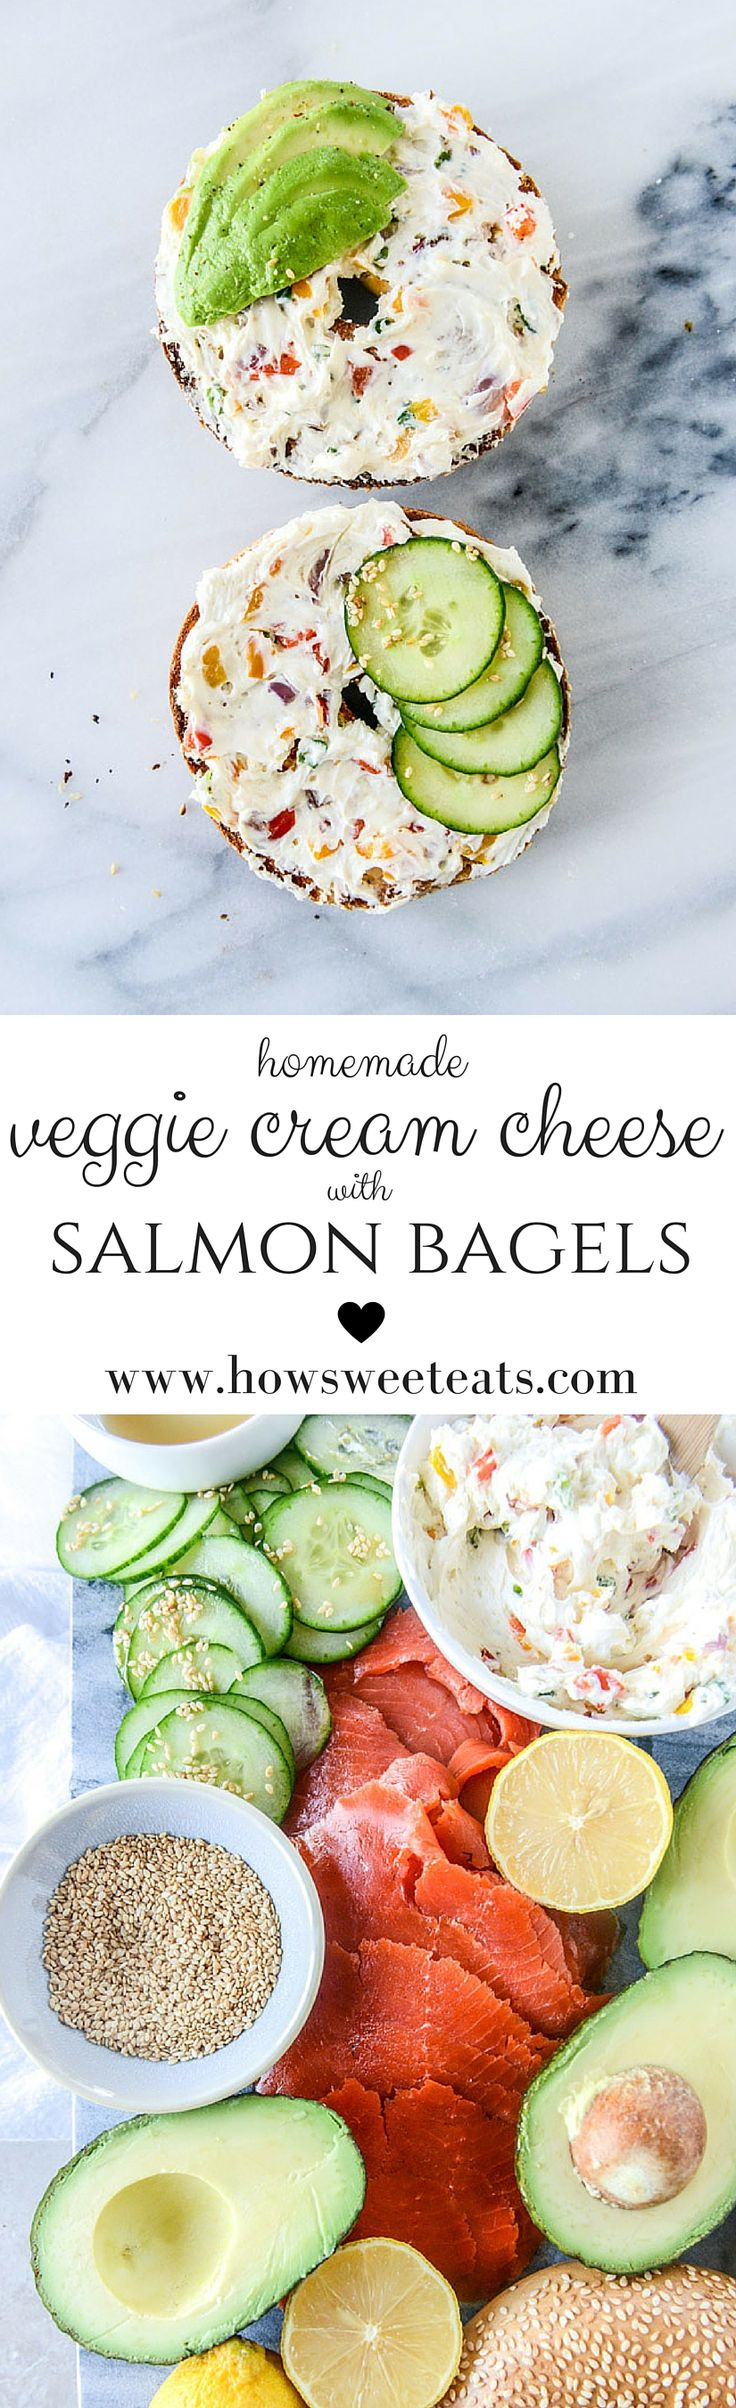 homemade roasted veggie cream cheese with my favorite lox bagel I howsweeteats.com